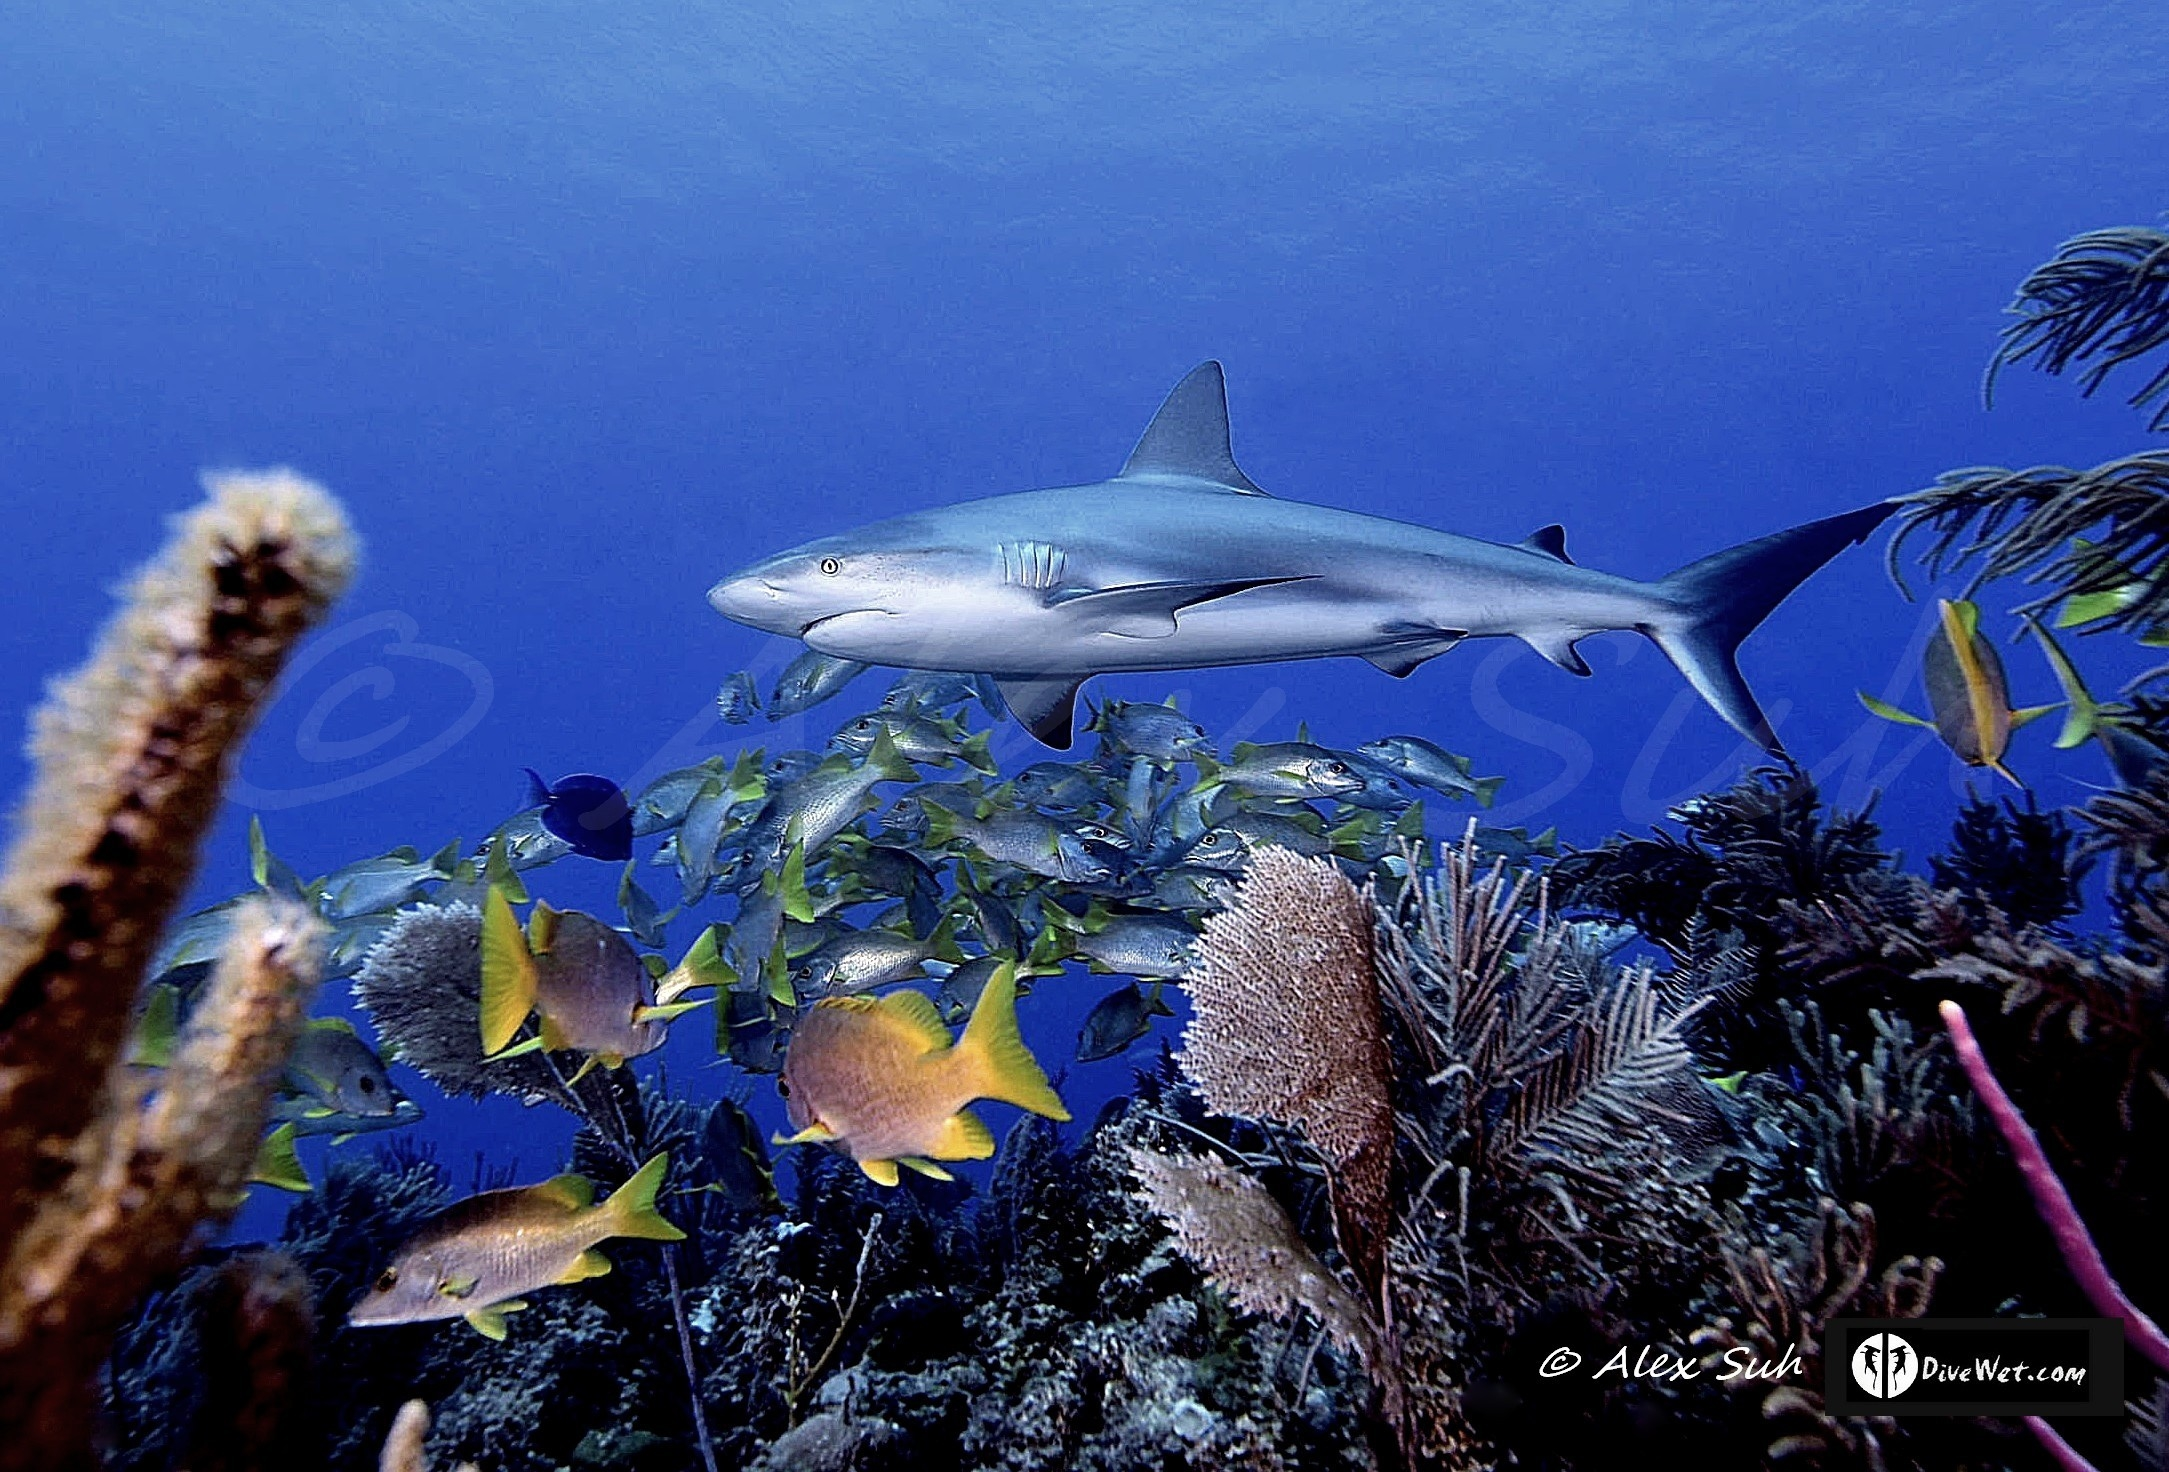 Caribbean Reef Shark (Carcharhinus perezii) Over Reef